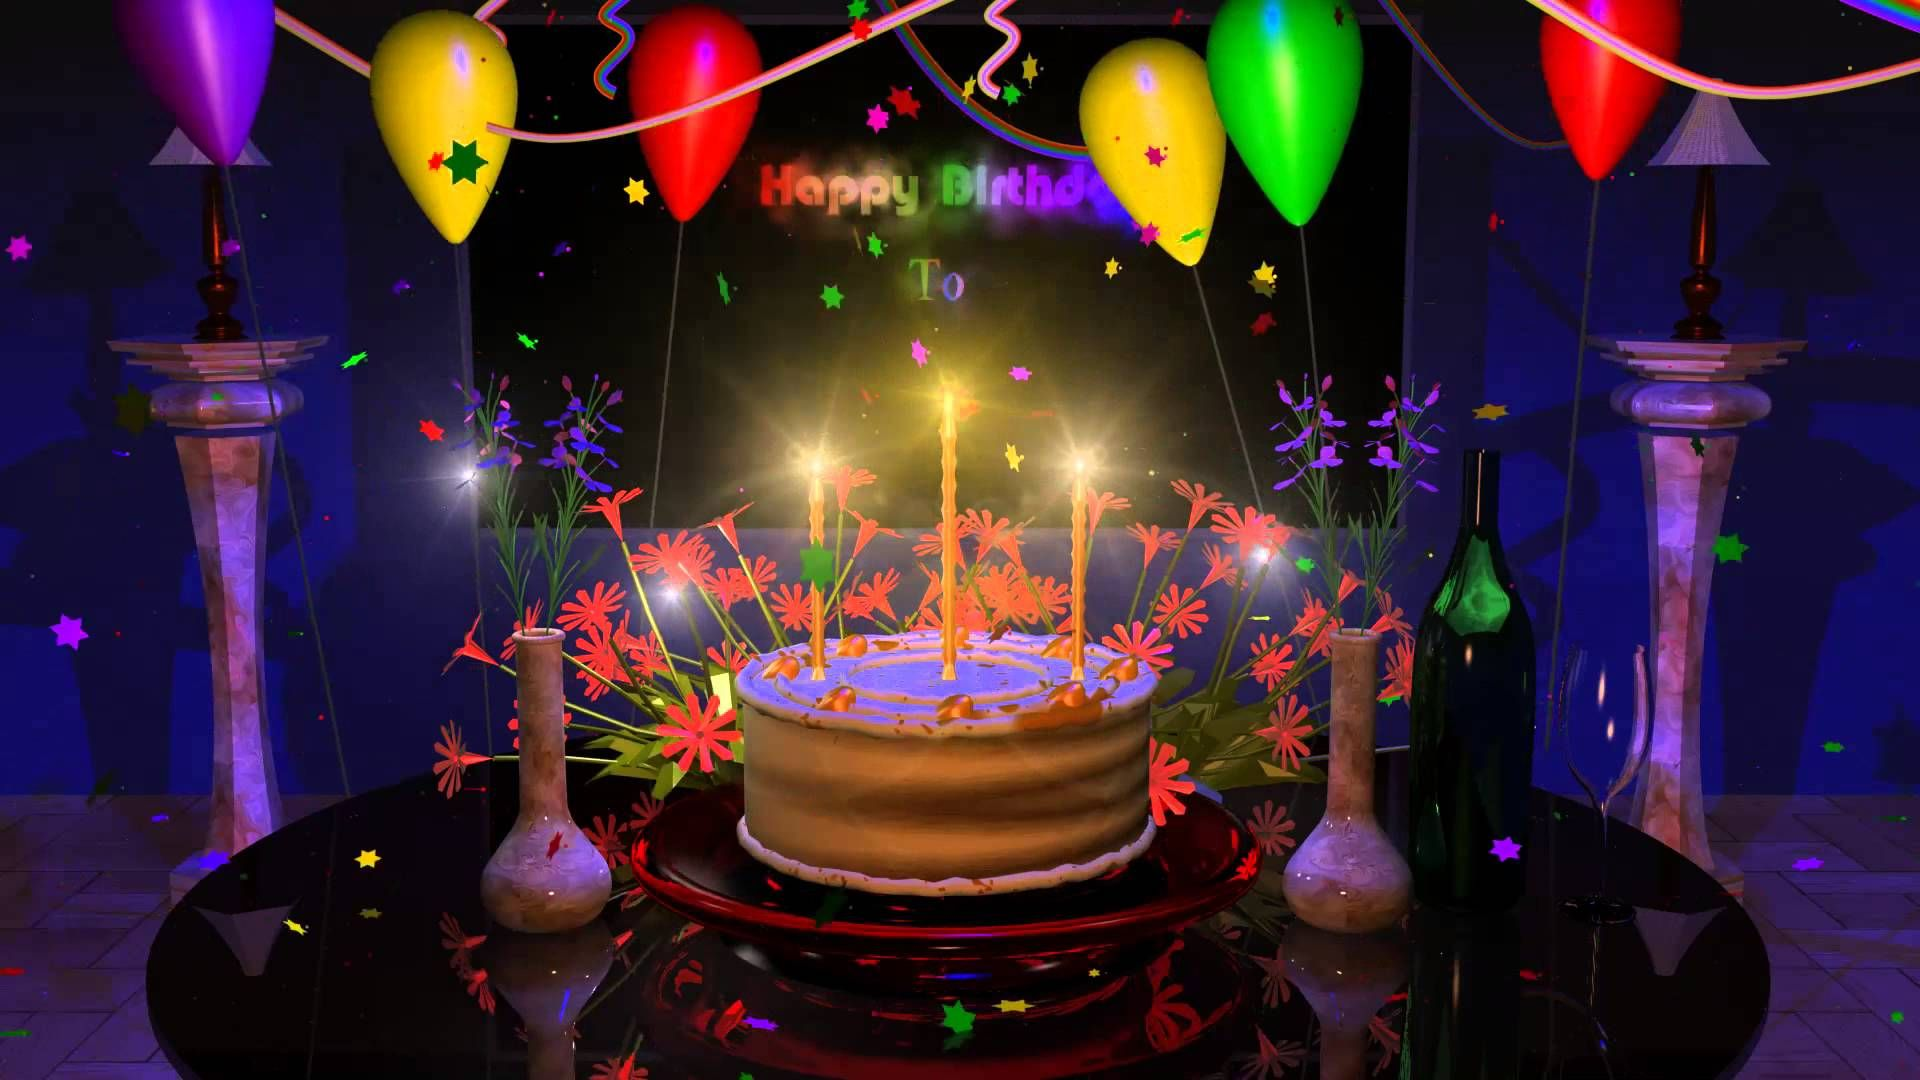 Happy Birthday Cake Presentation Animation Video - YouTube | TRAVEL